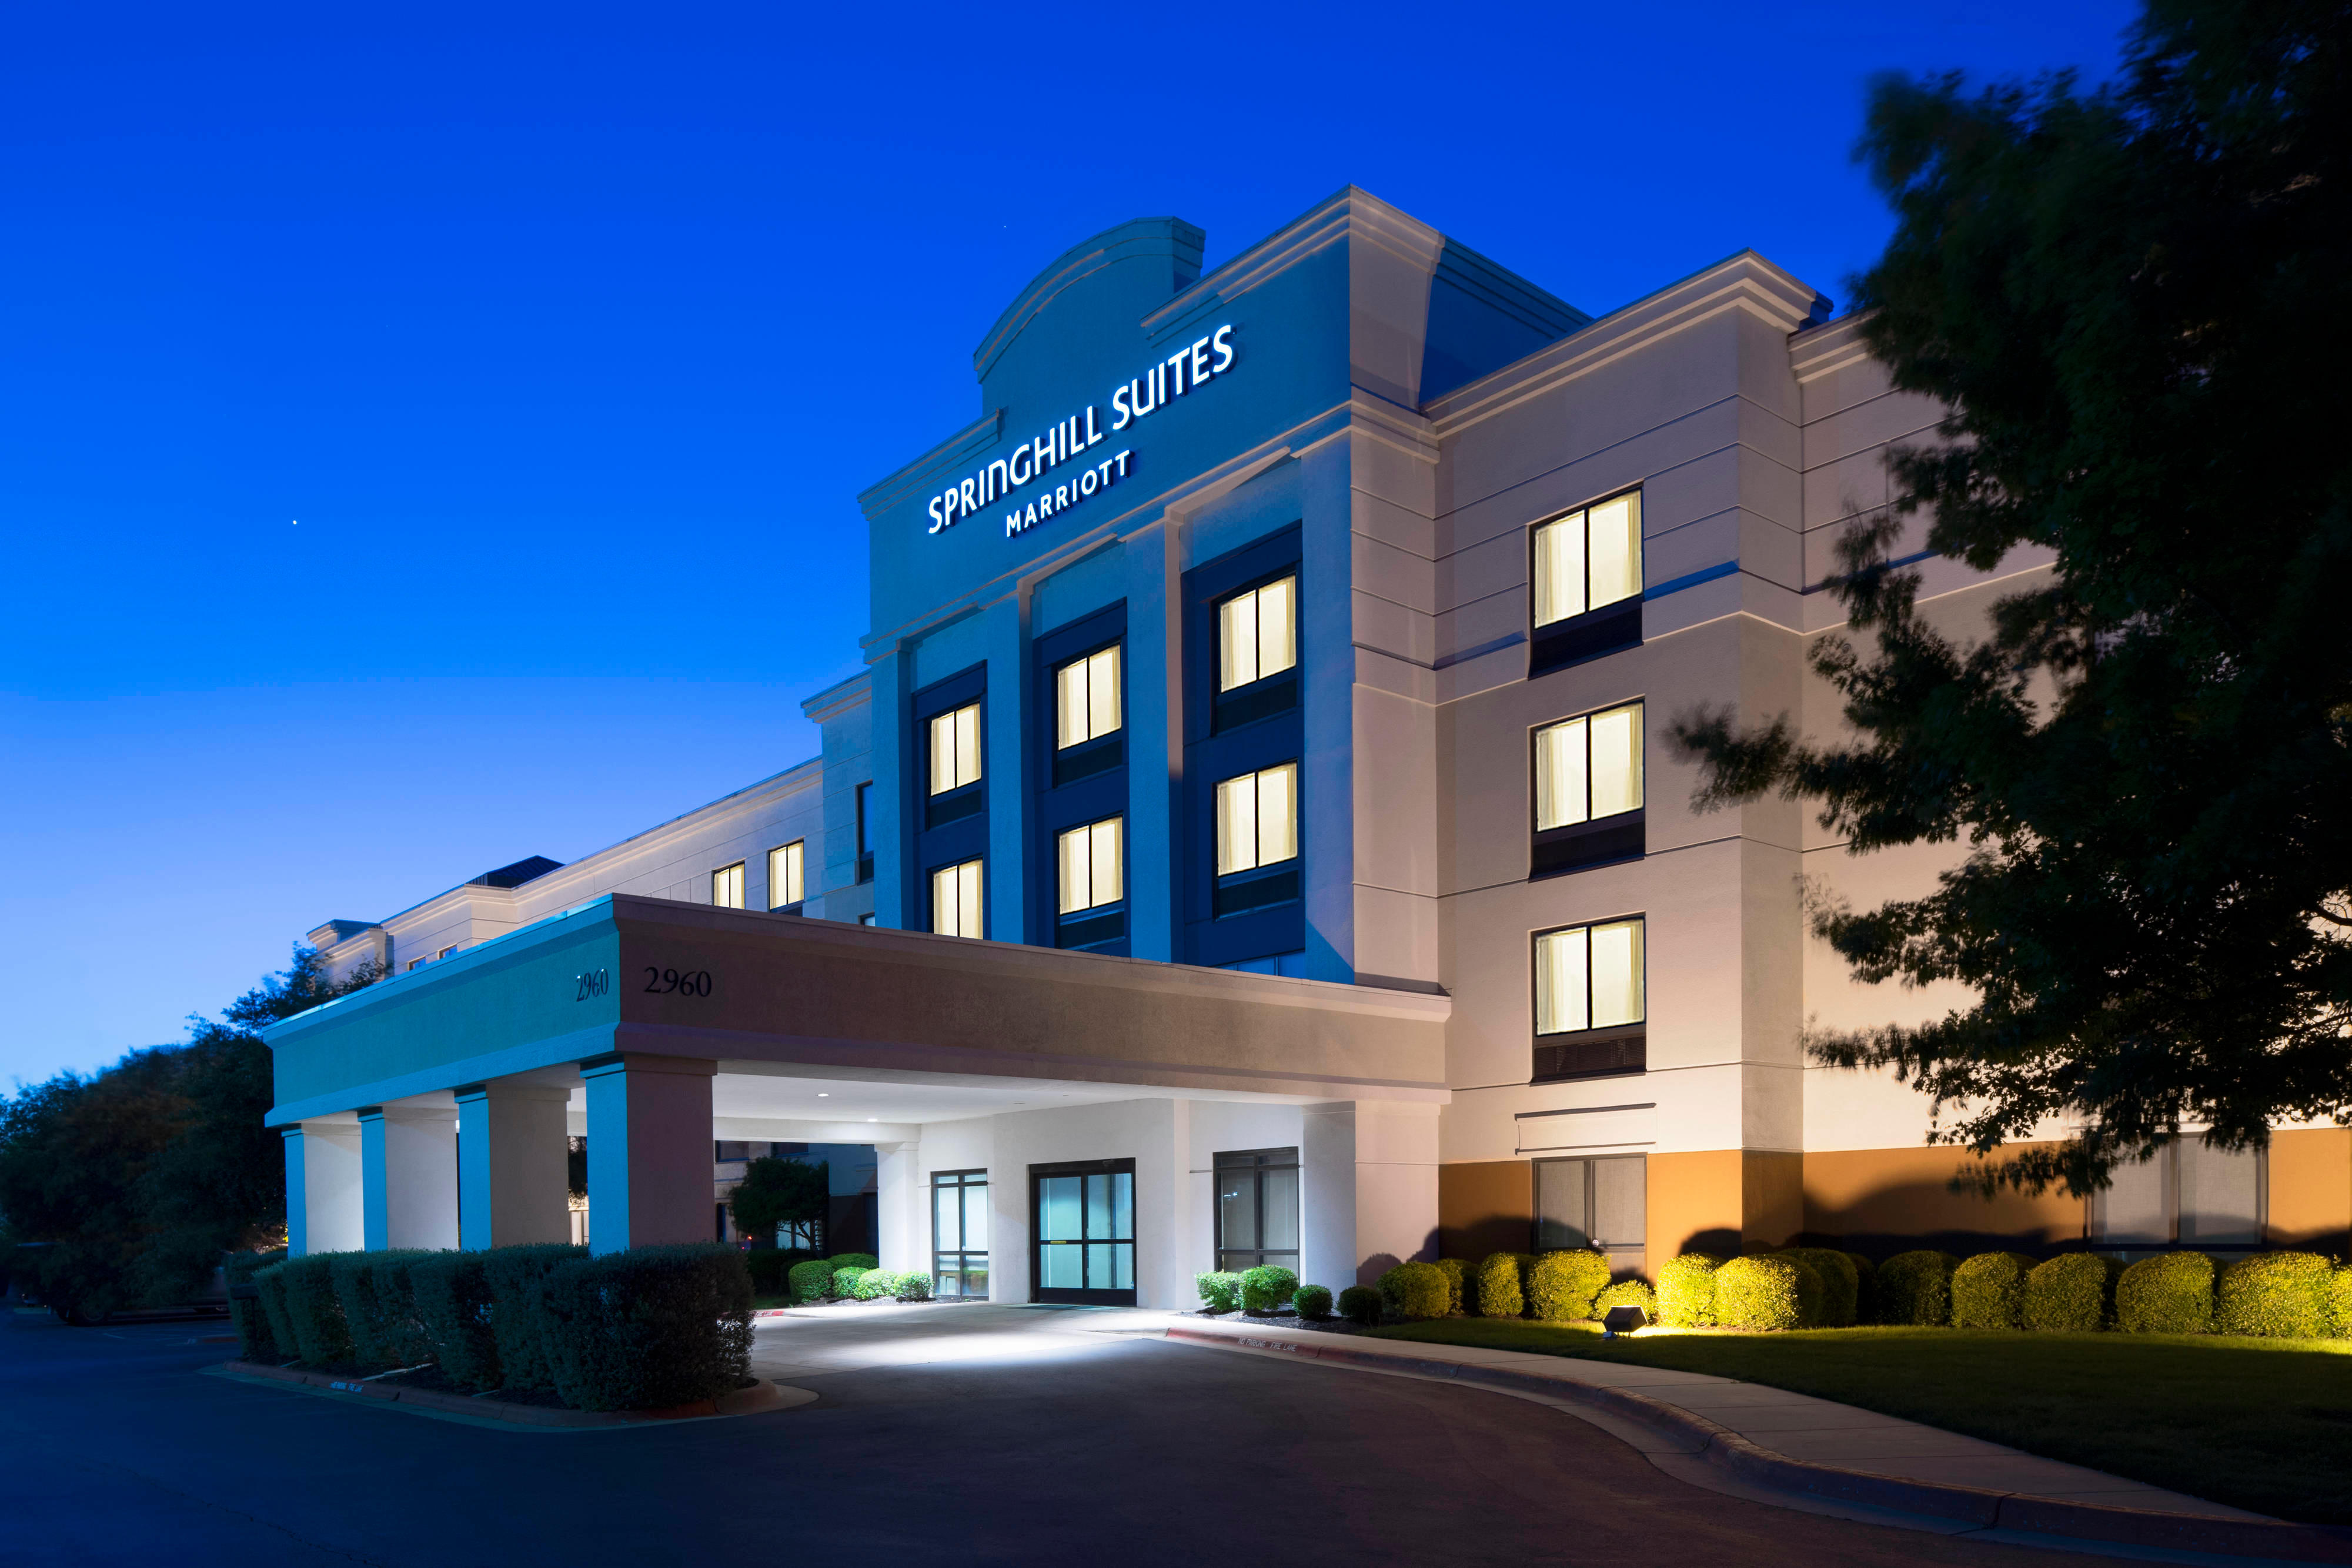 SpringHill Suites by Marriott Austin Round Rock image 1